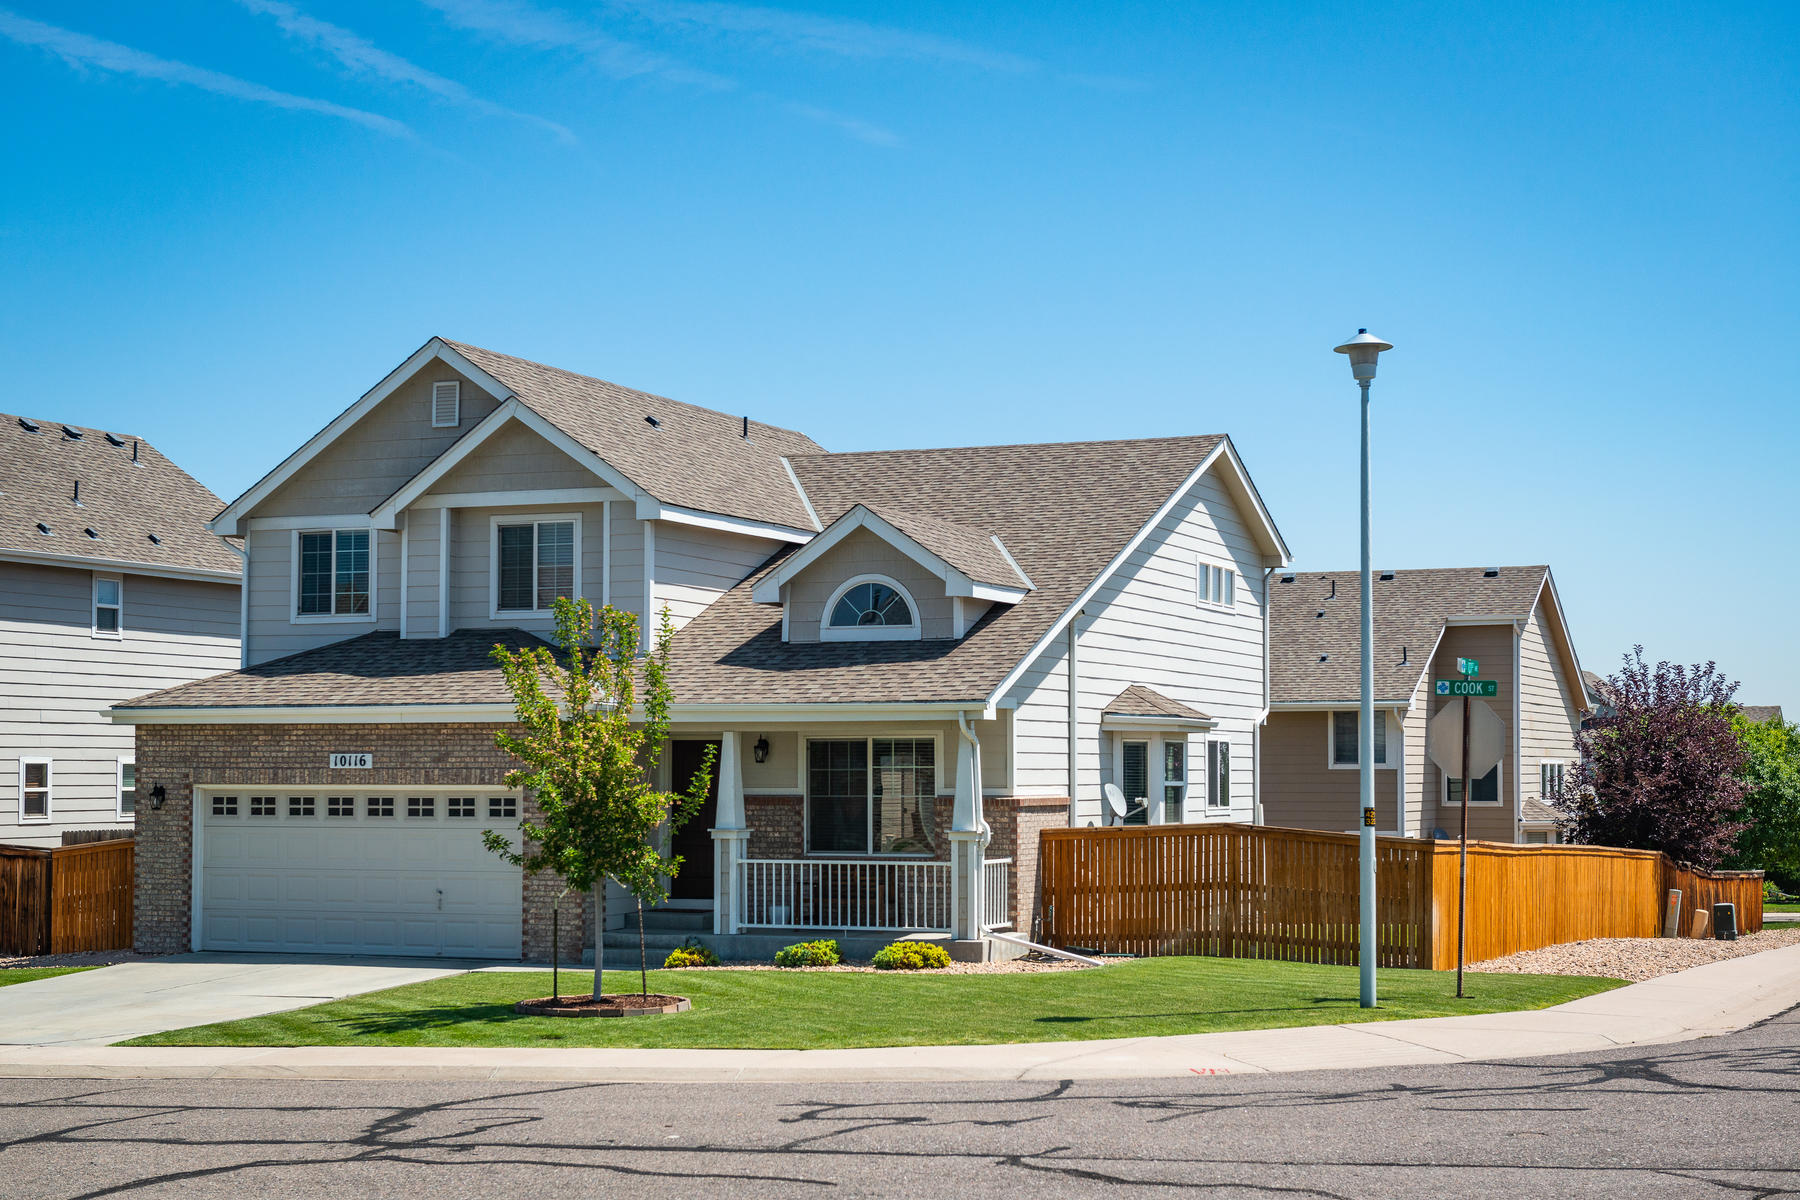 Property for Active at Move In Ready home that has been thoughtfully updated and maintained 10116 Cook St Thornton, Colorado 80229 United States